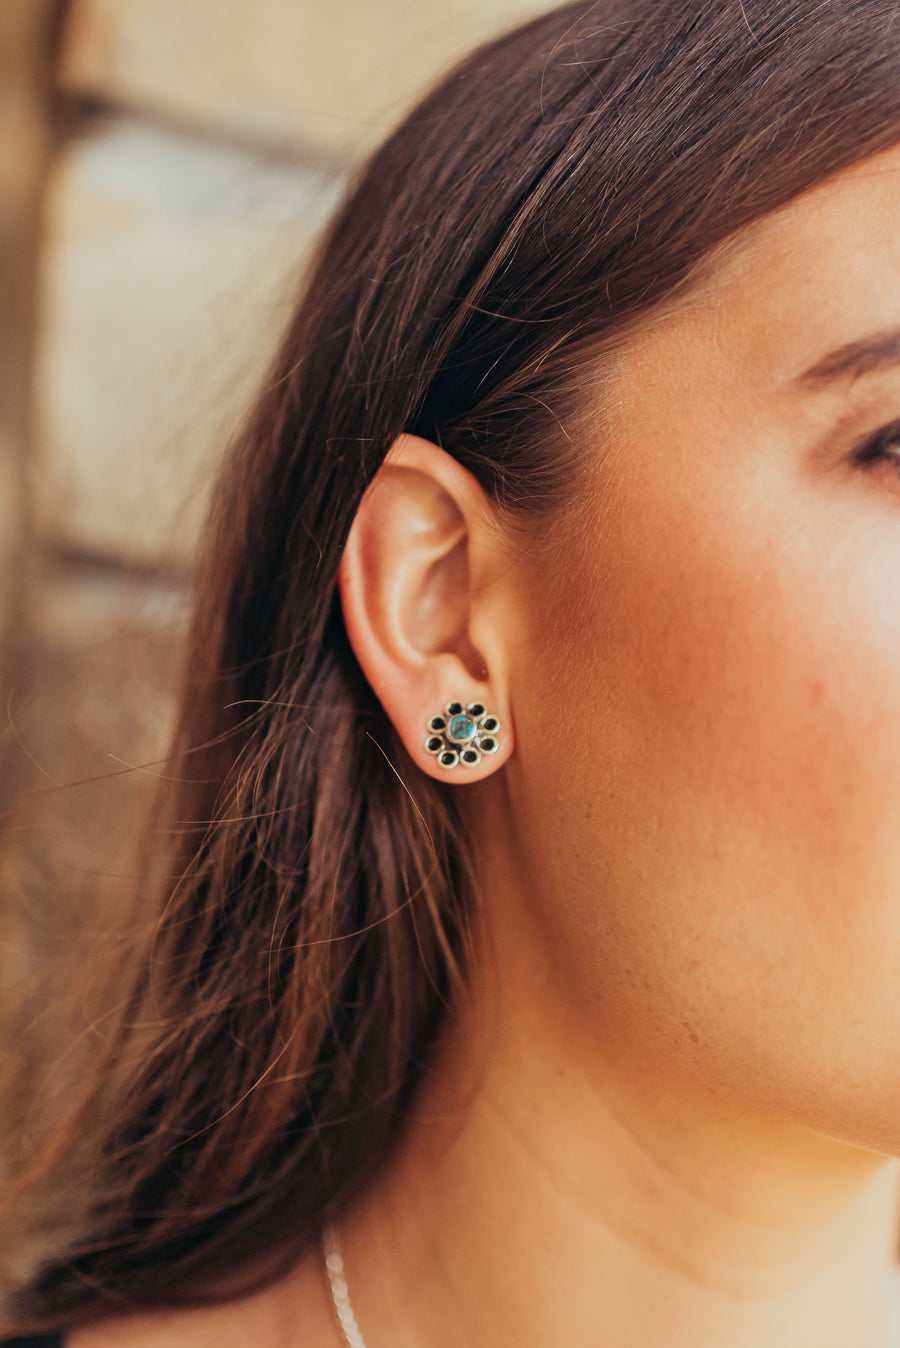 The Kaye Earrings